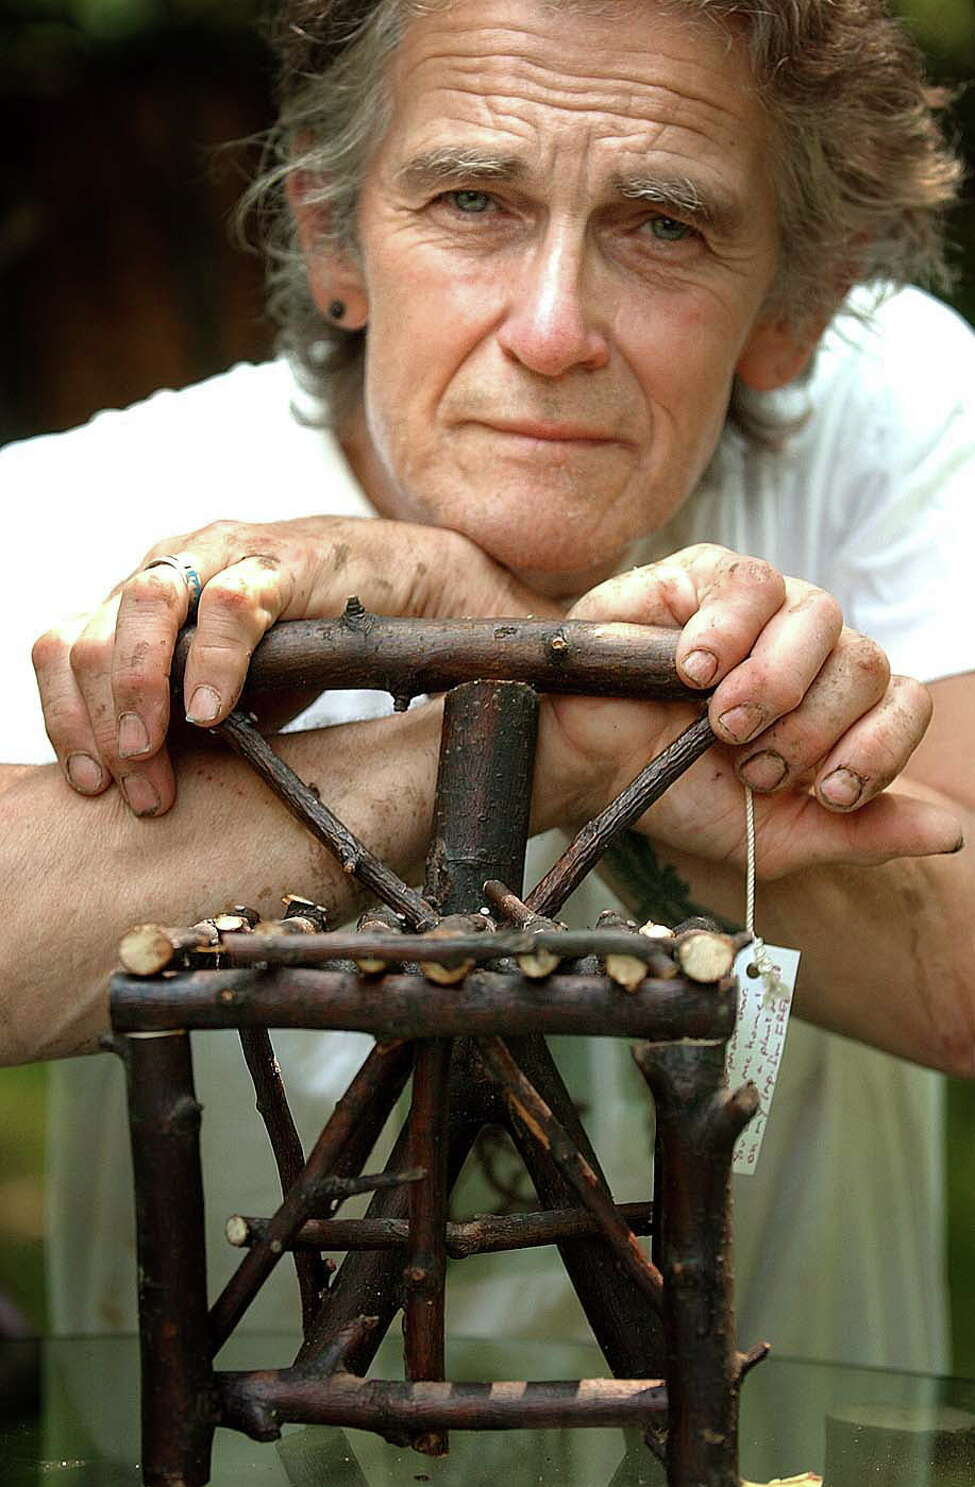 Paul Weinman and one of his miniature chairs that he made, Monday, June 27, 2005, in Albany, N.Y. (Steve Jacobs/Times Union)